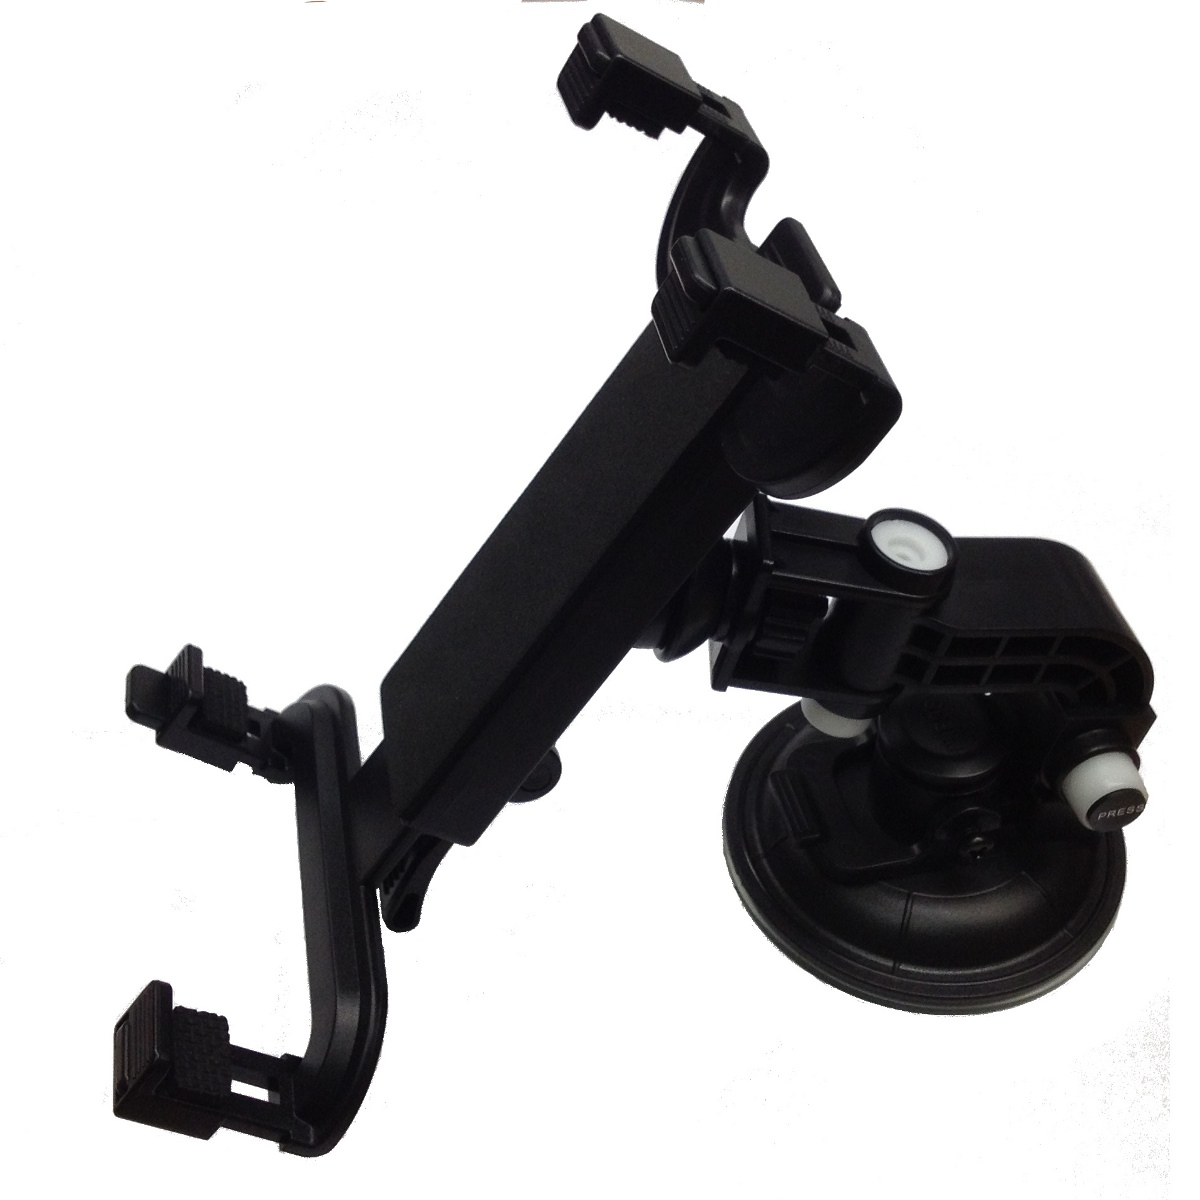 309211 - Windshield/Desk Mount for iPads & Tablets